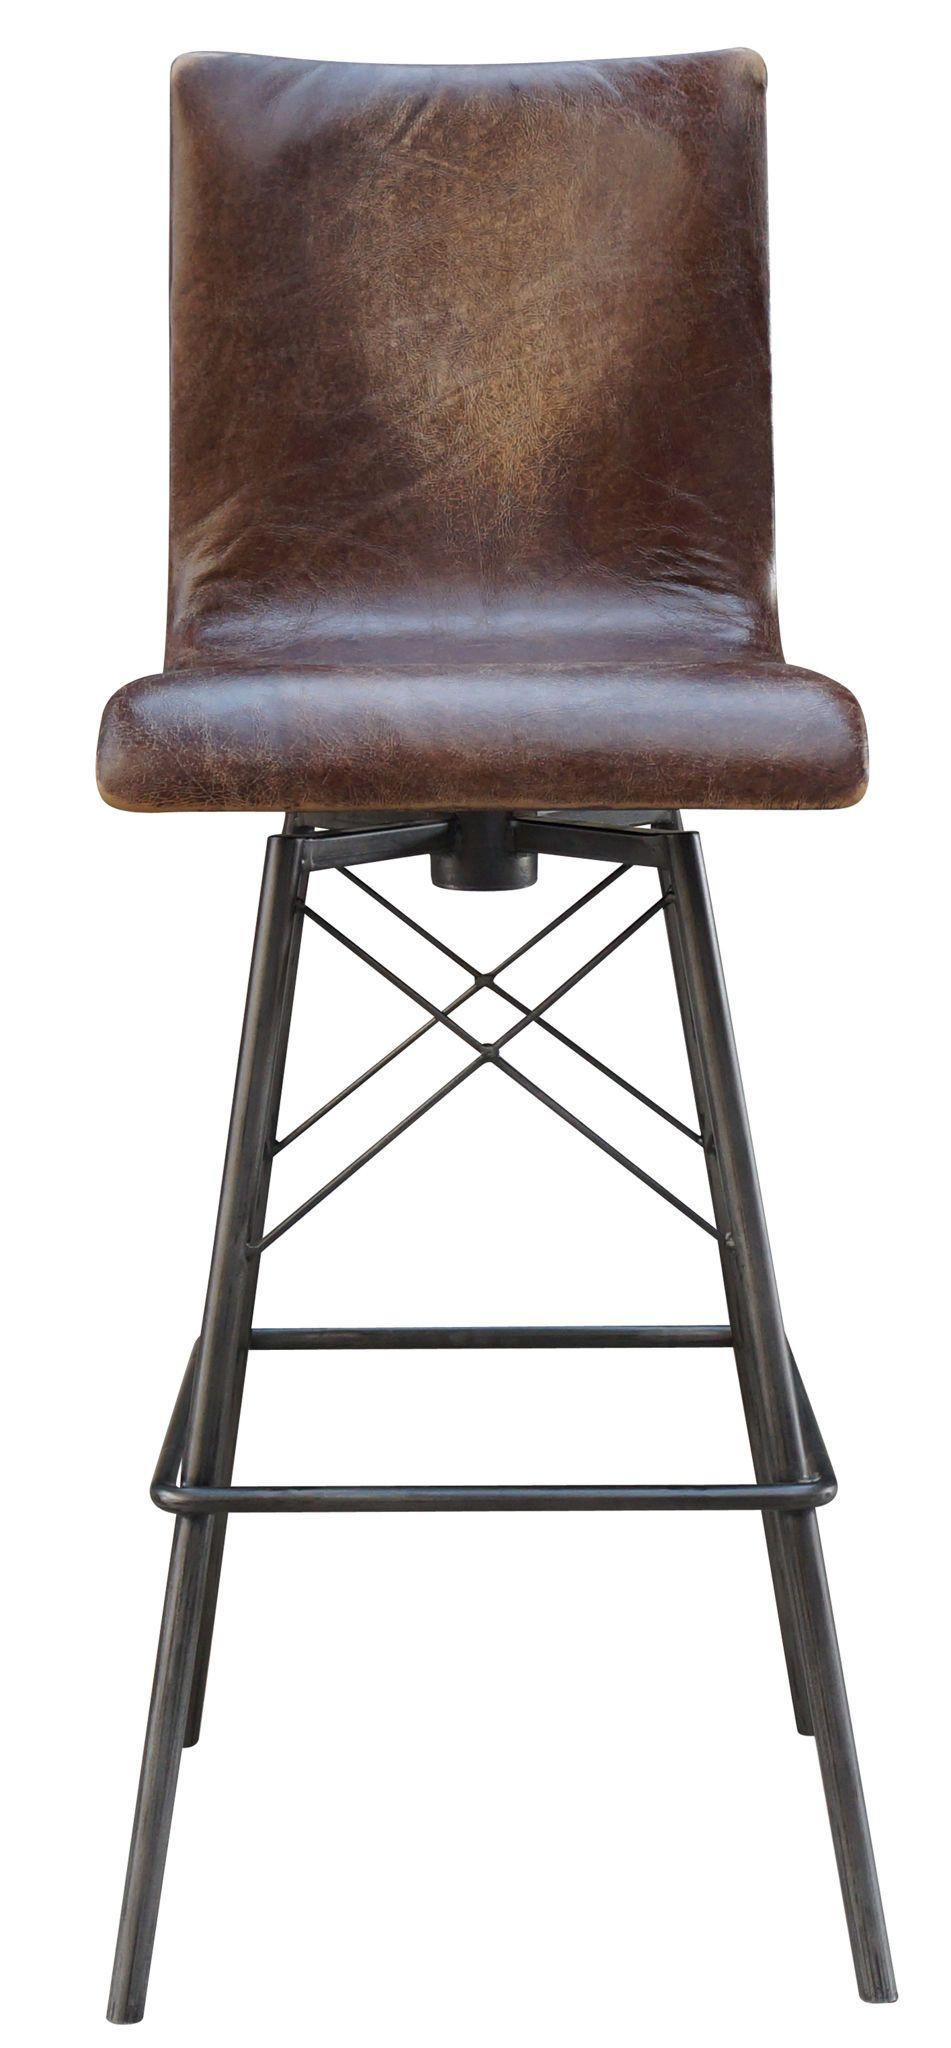 Jenna Weathered Swivel Leather Bar Stool With Metal Cross Base 360 Spin No Spring Seat 30